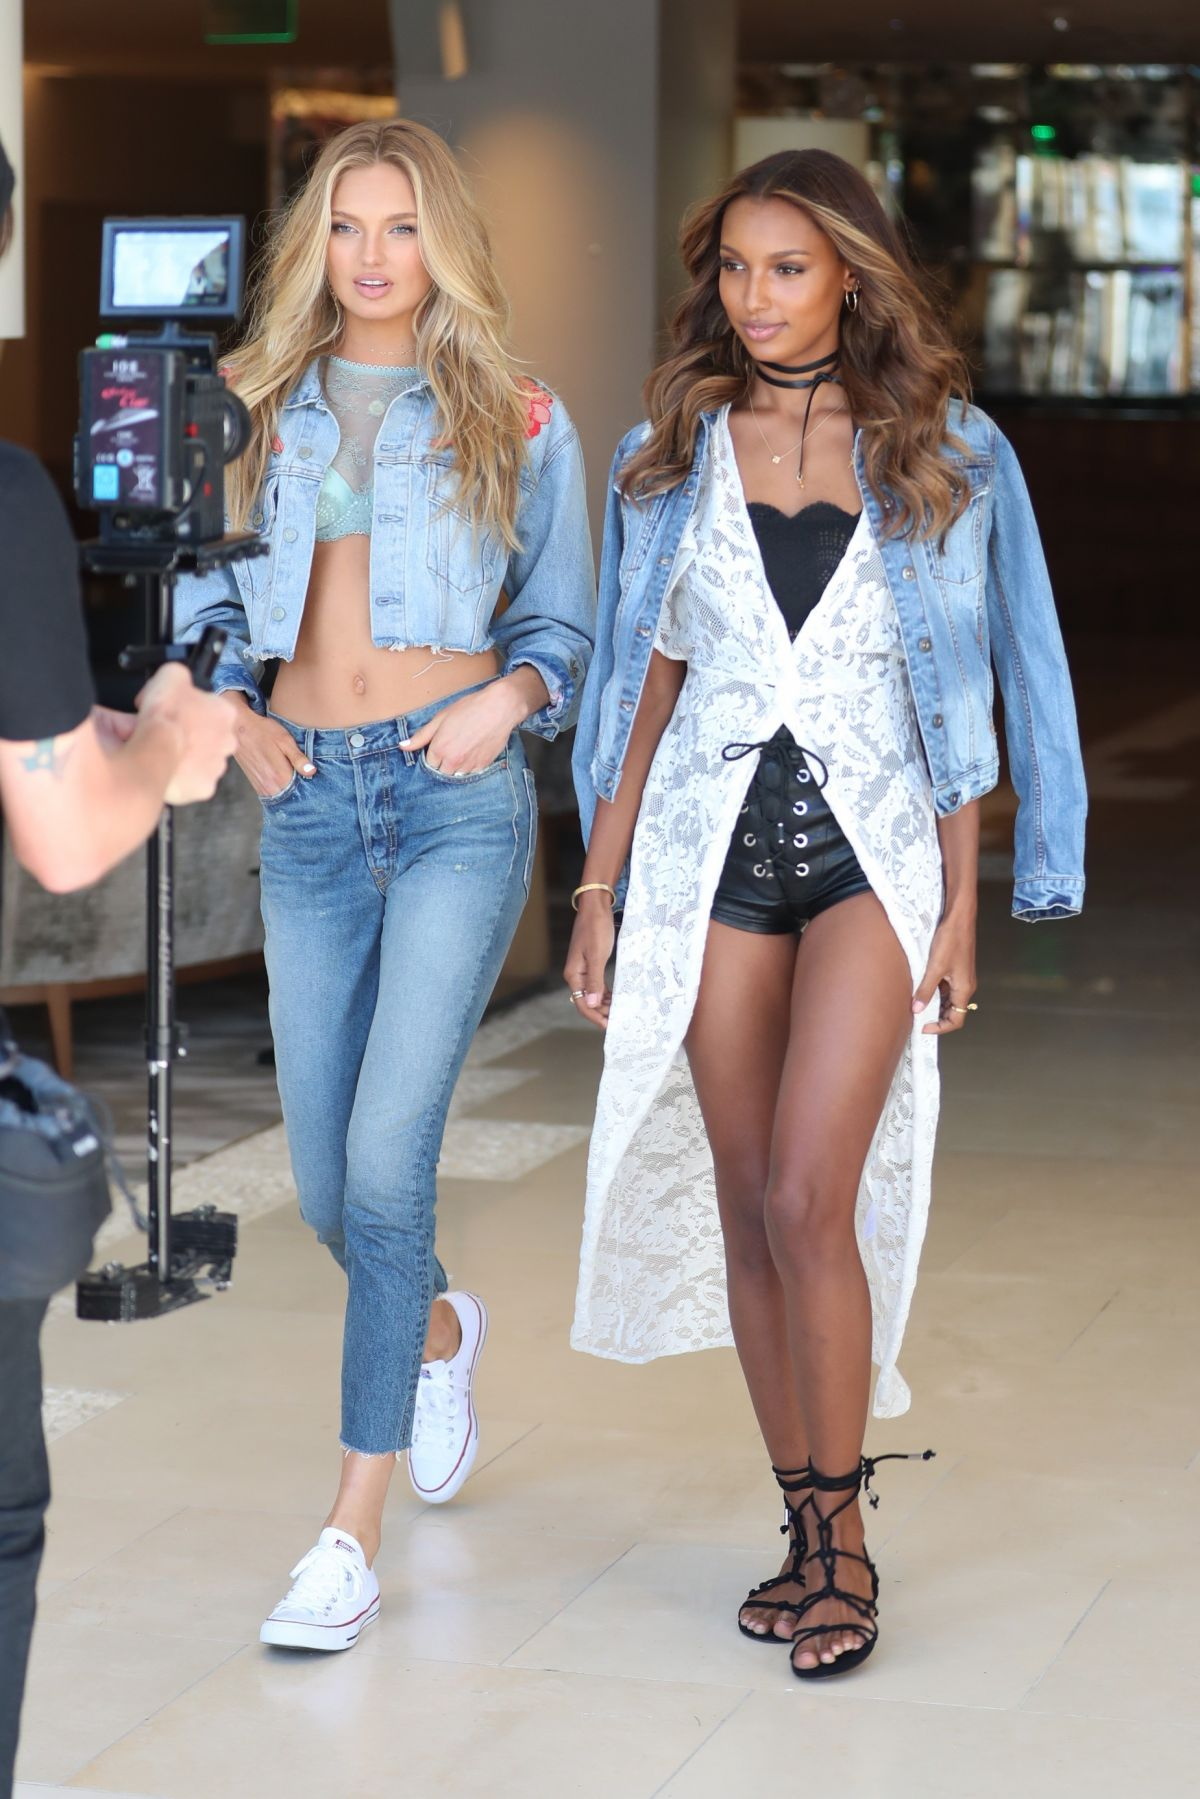 ROMEE STRIJD and JASMINE TOOKES at Press Shoot for Victoria